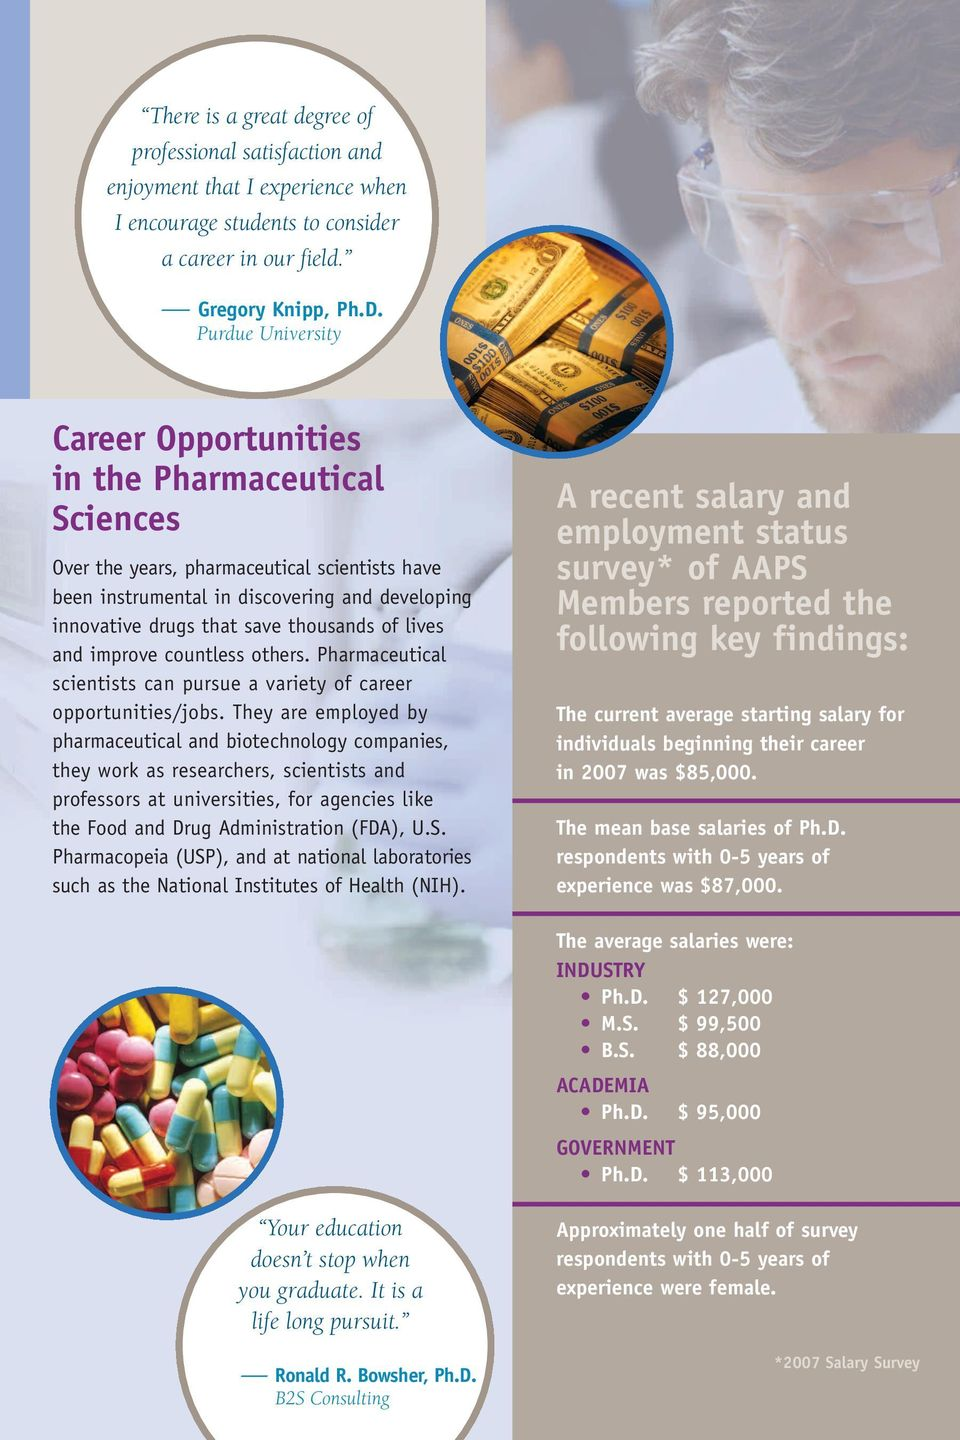 thousands of lives and improve countless others. Pharmaceutical scientists can pursue a variety of career opportunities/jobs.